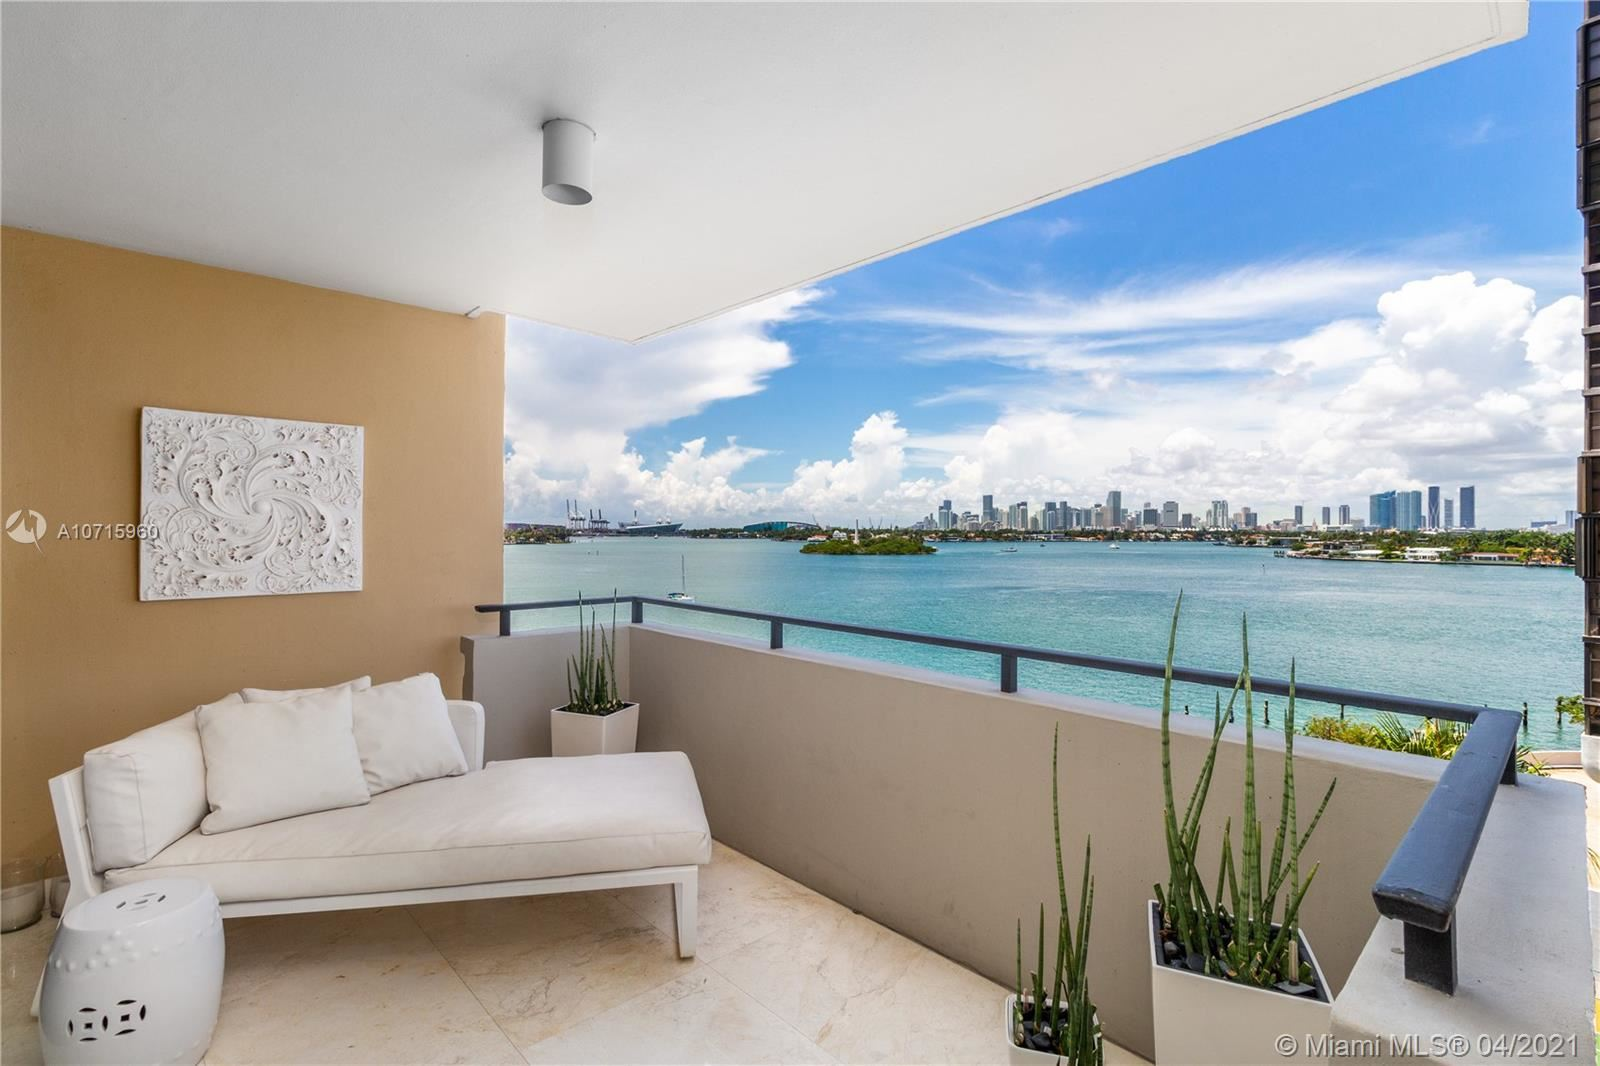 11 Island Ave #703, Miami Beach, FL 33139 - #: A10715960